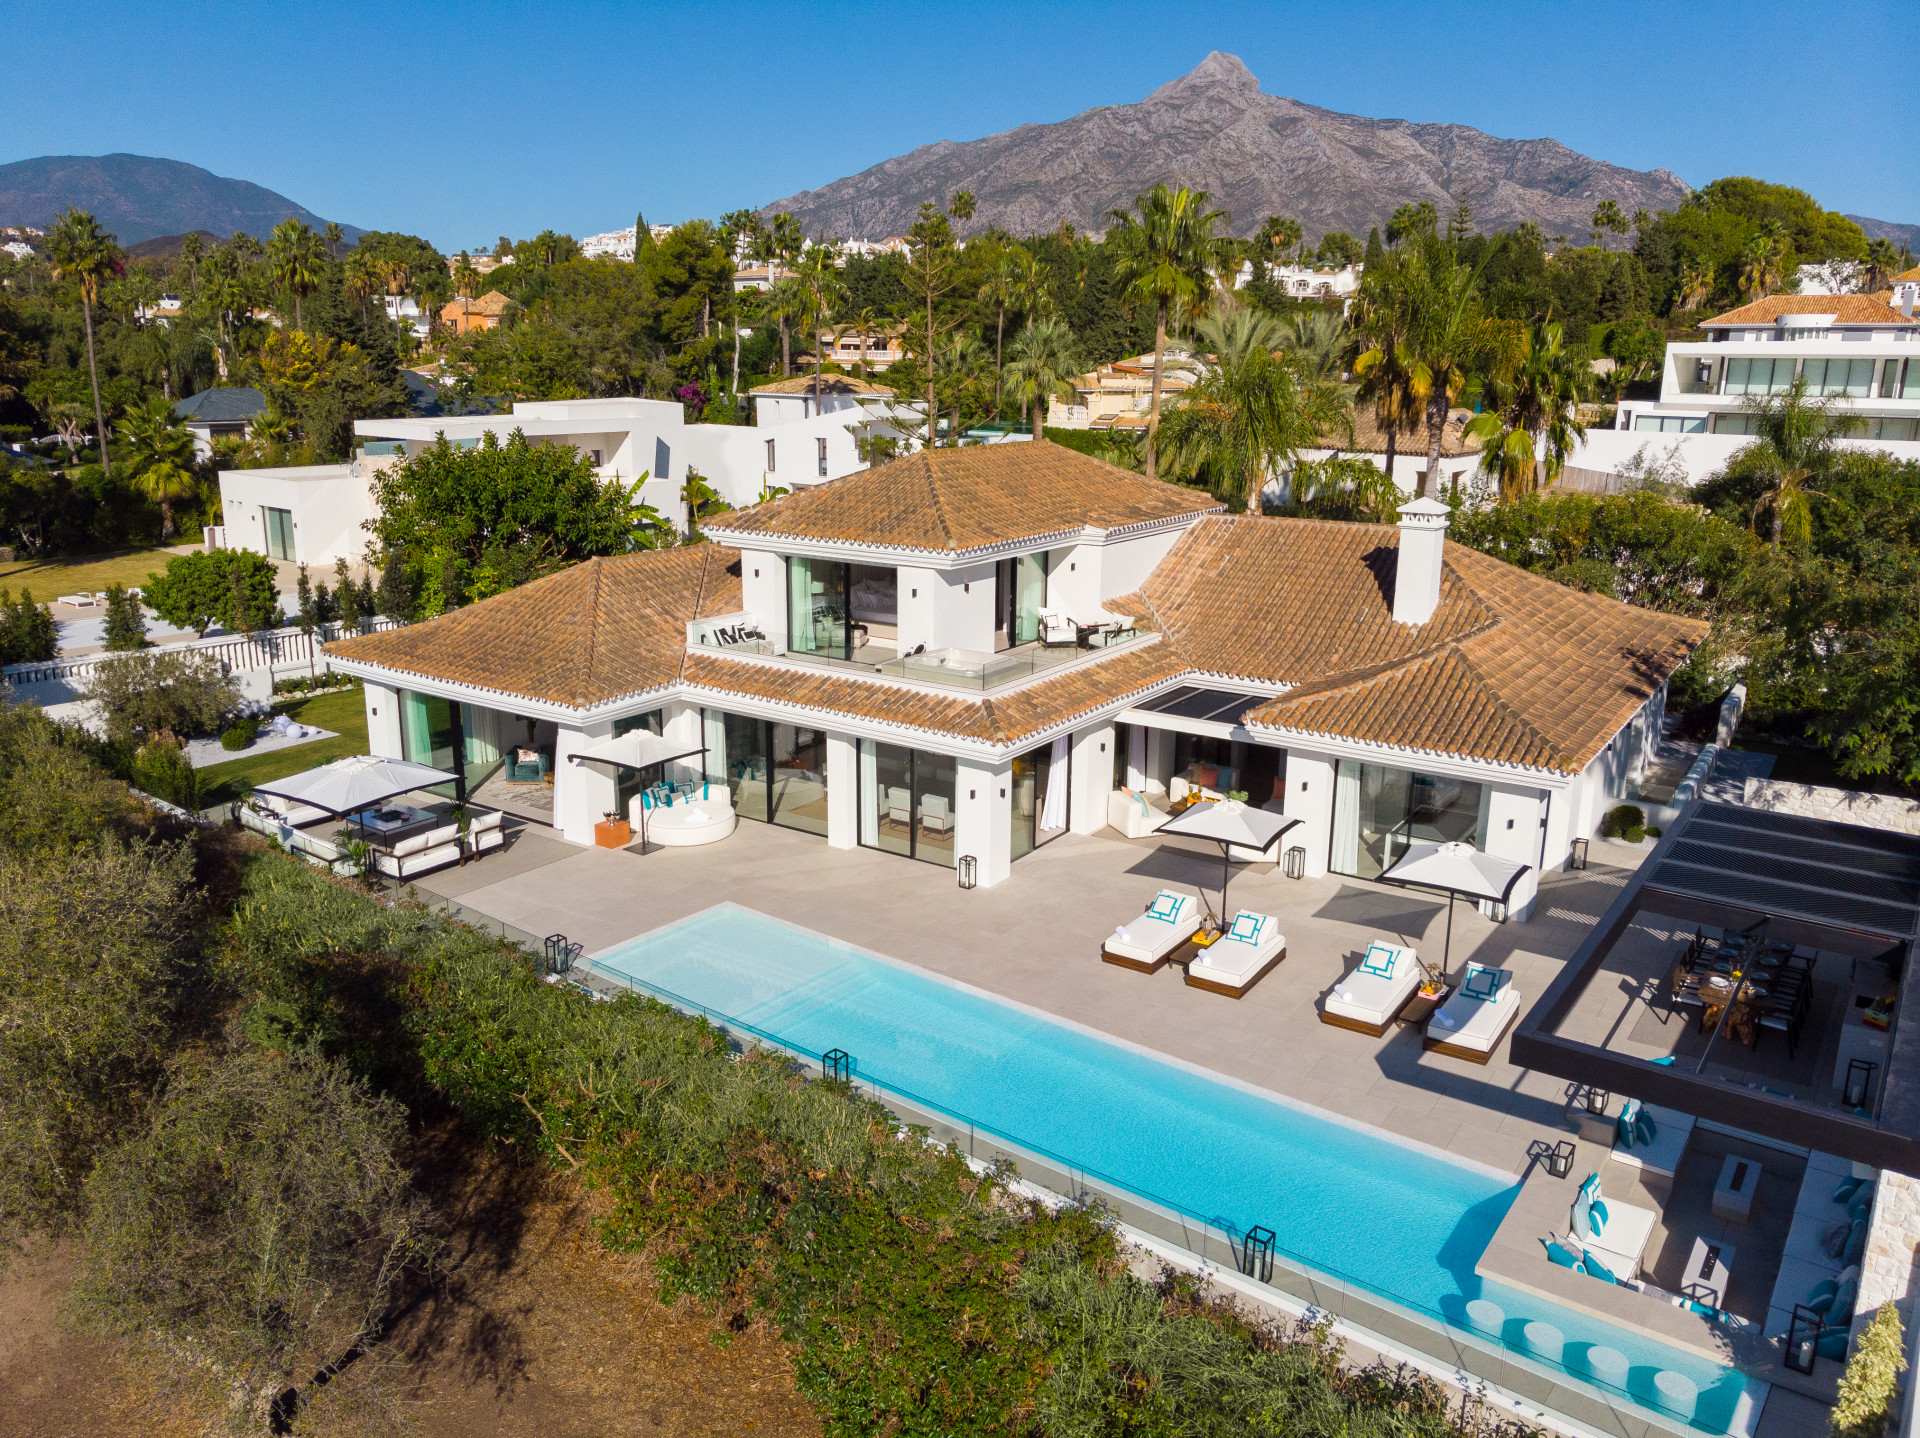 Refurbished front line golf modern Andalusian style villa for sale in Las Brisas - Nueva Andalucía